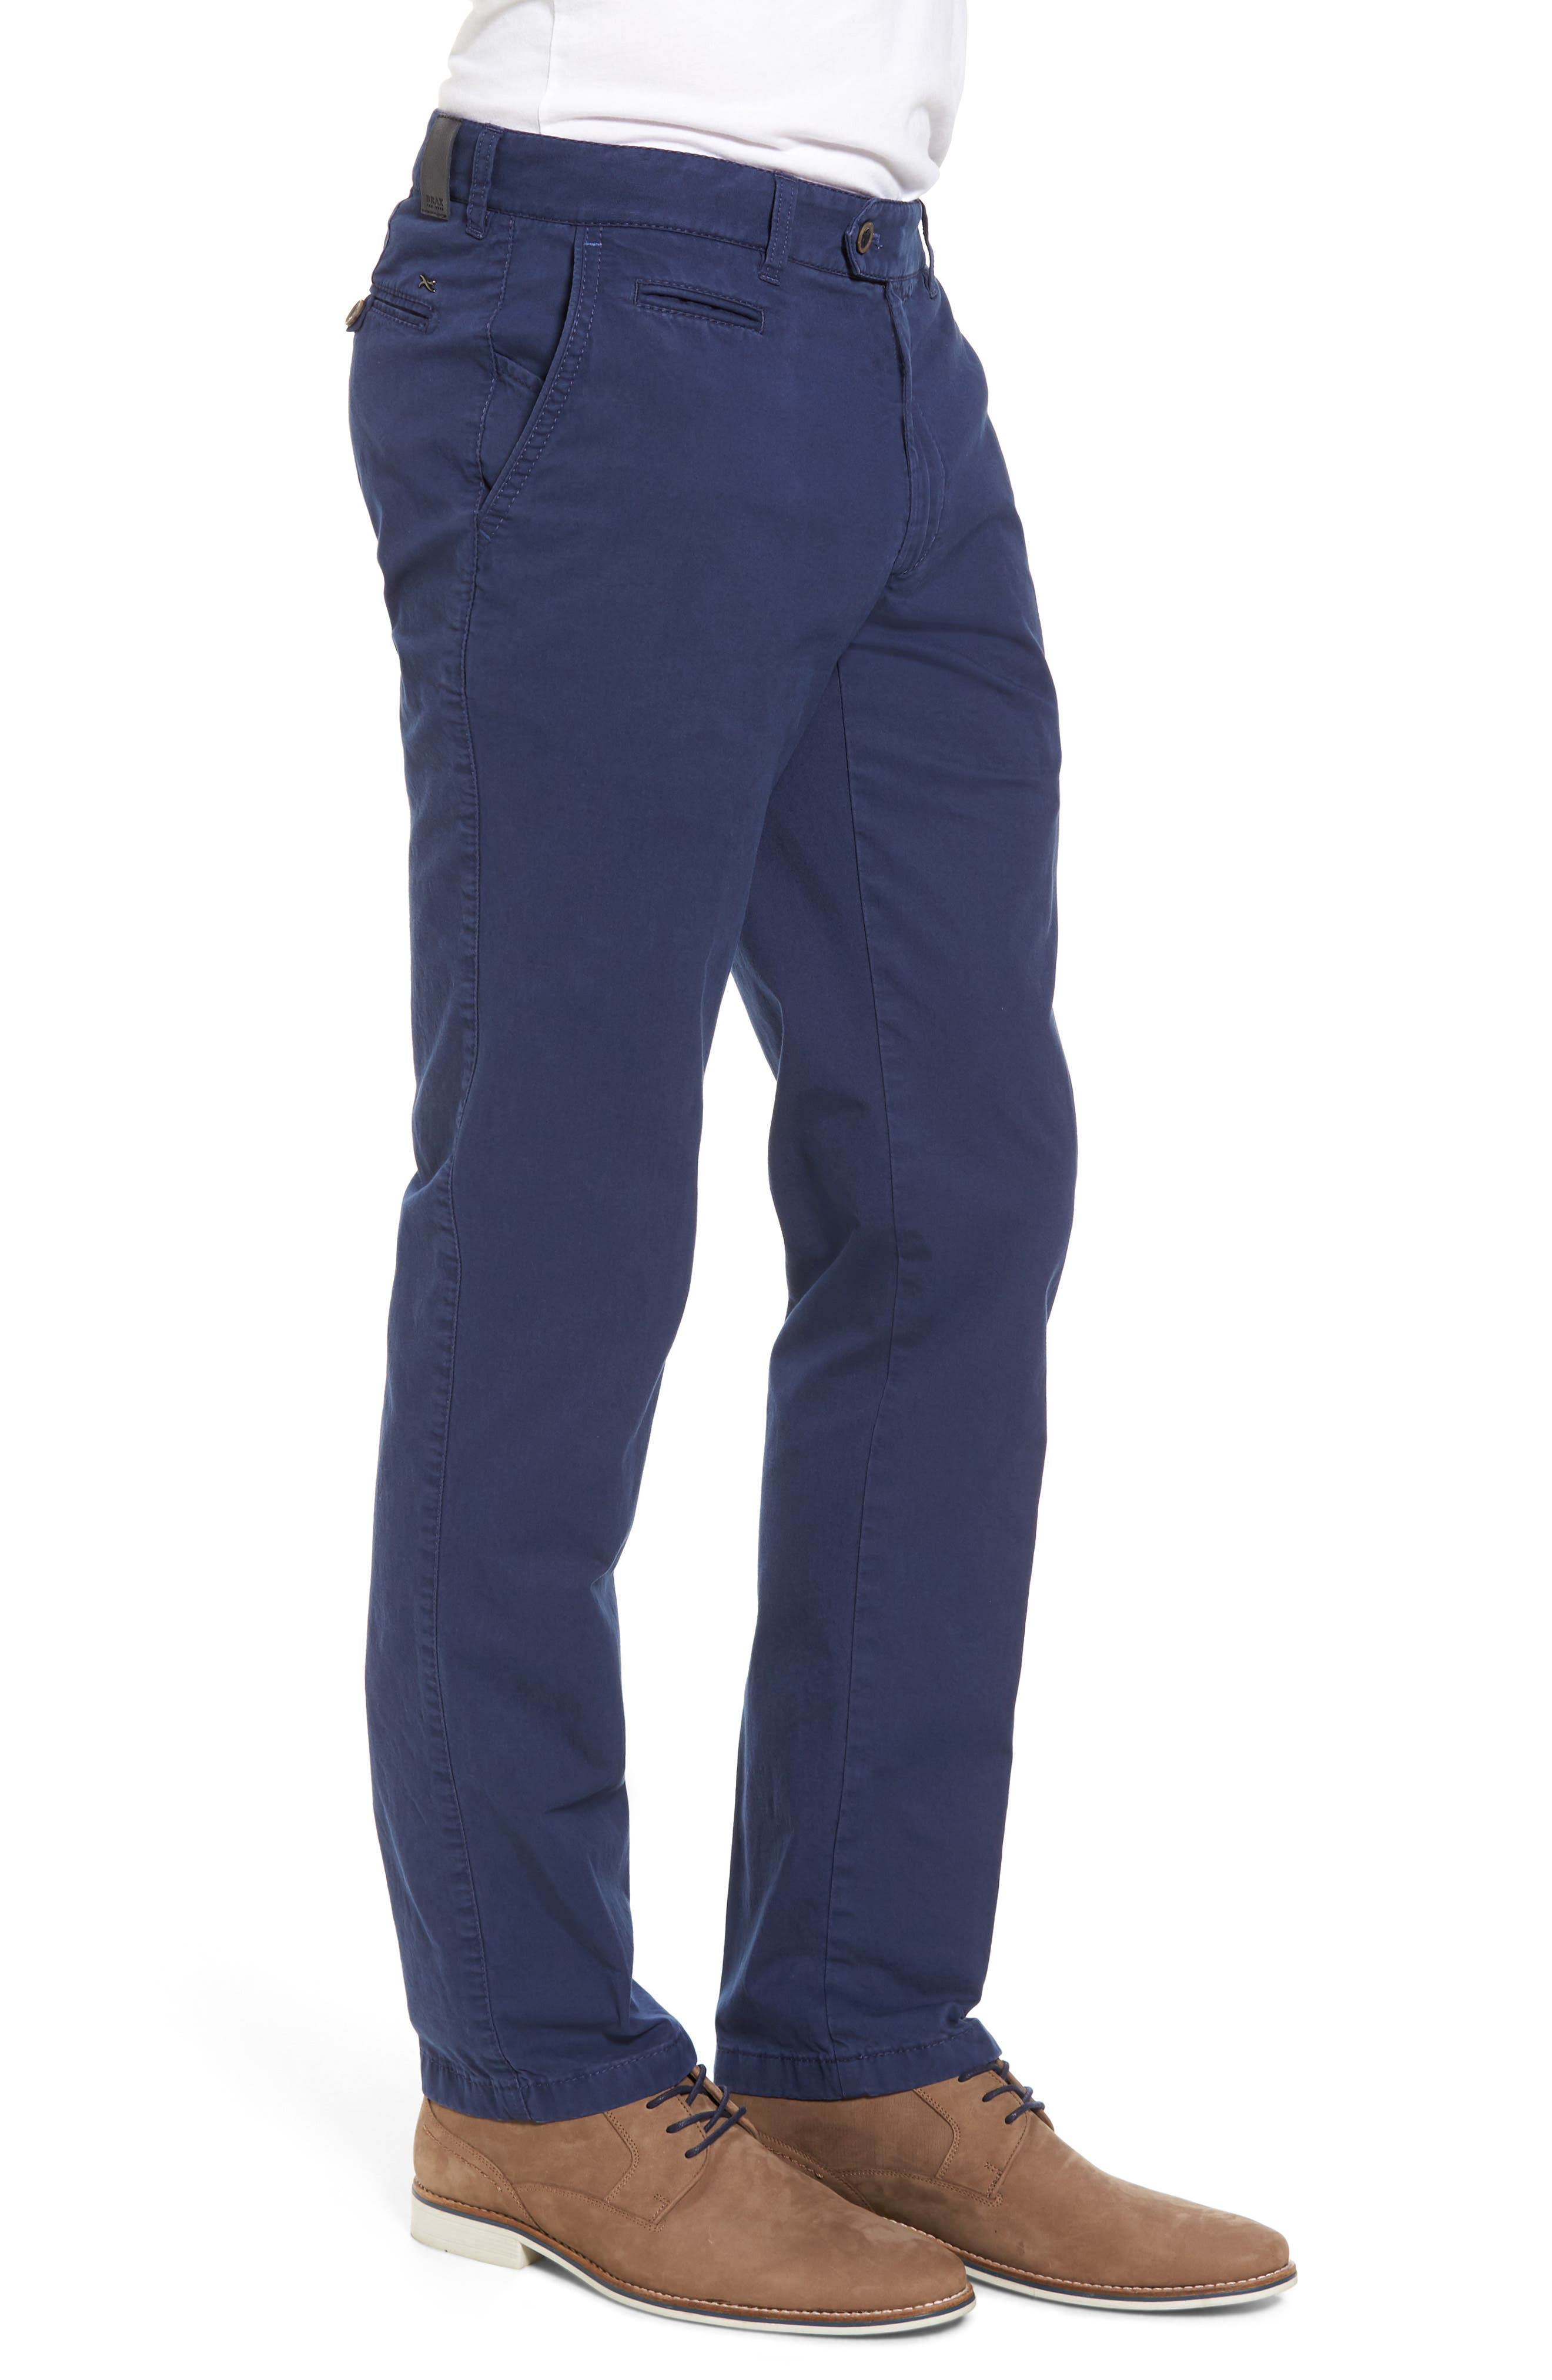 Everest Flat Front Chinos,                             Alternate thumbnail 3, color,                             Pacific